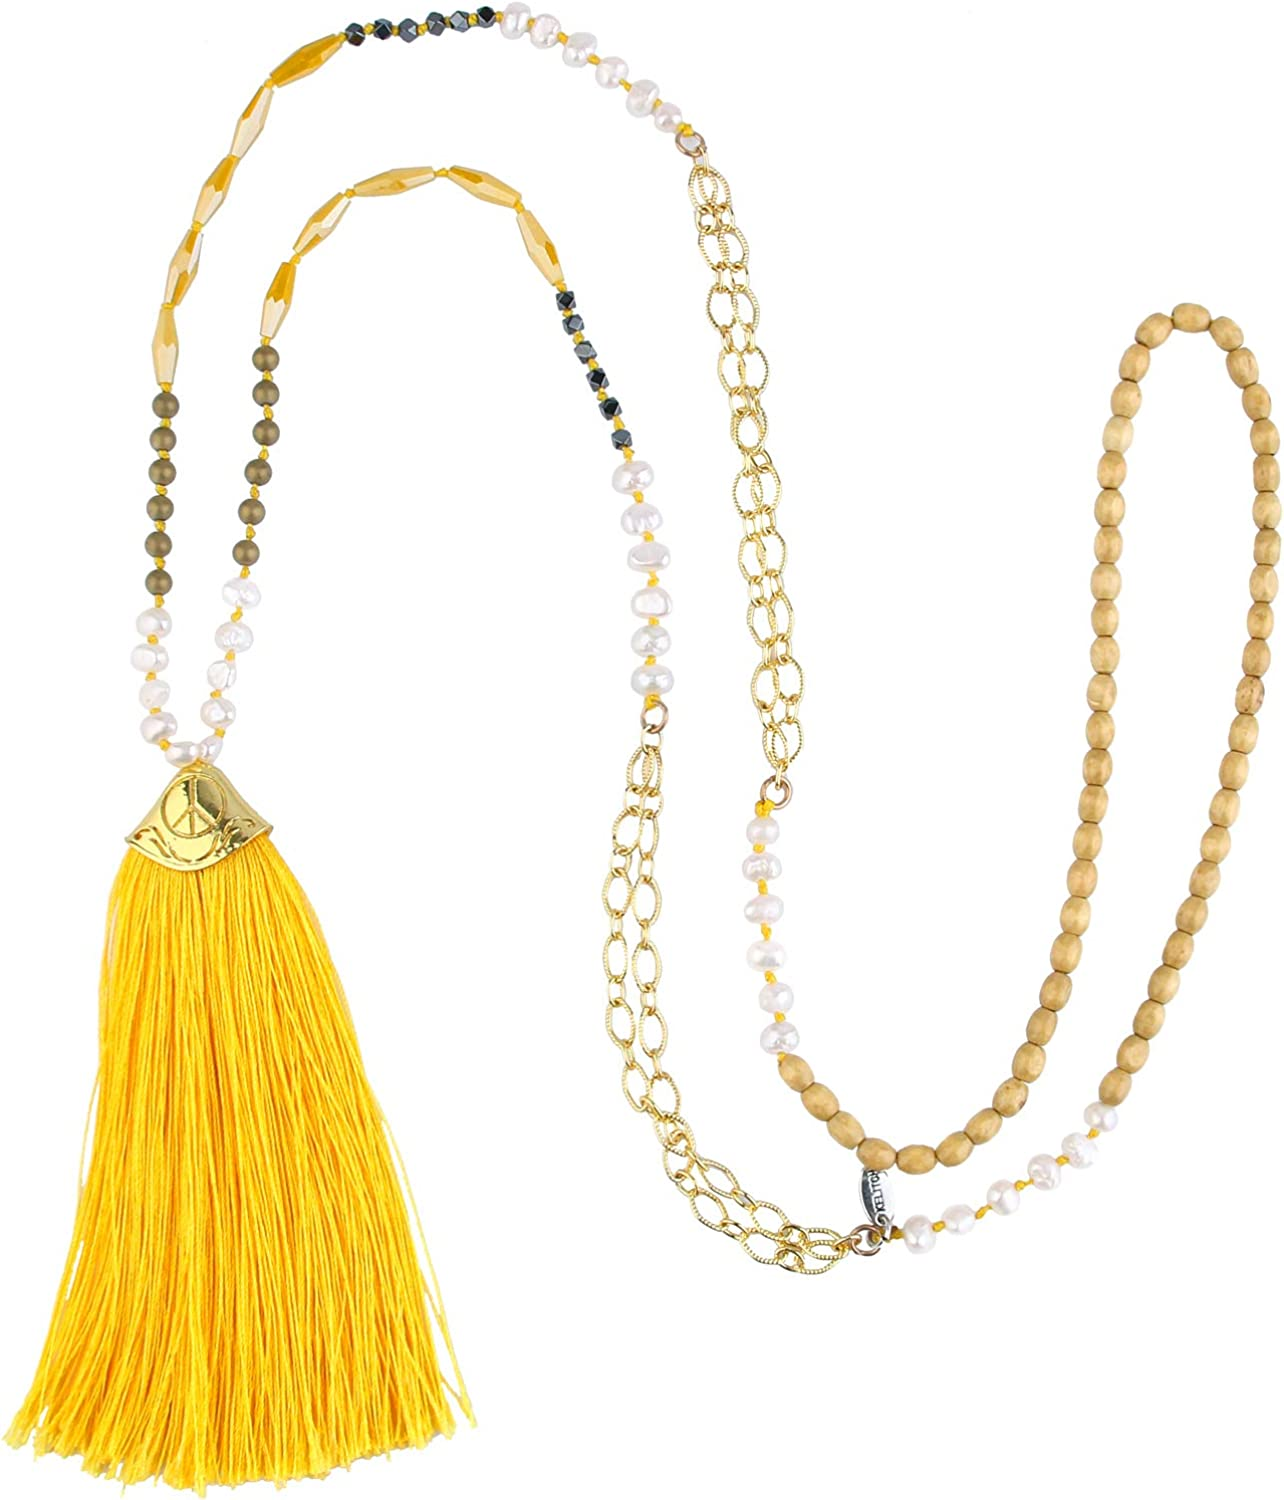 KELITCH Turquoise Crystal Beads Strand Necklace Color Tassel Necklace for Women